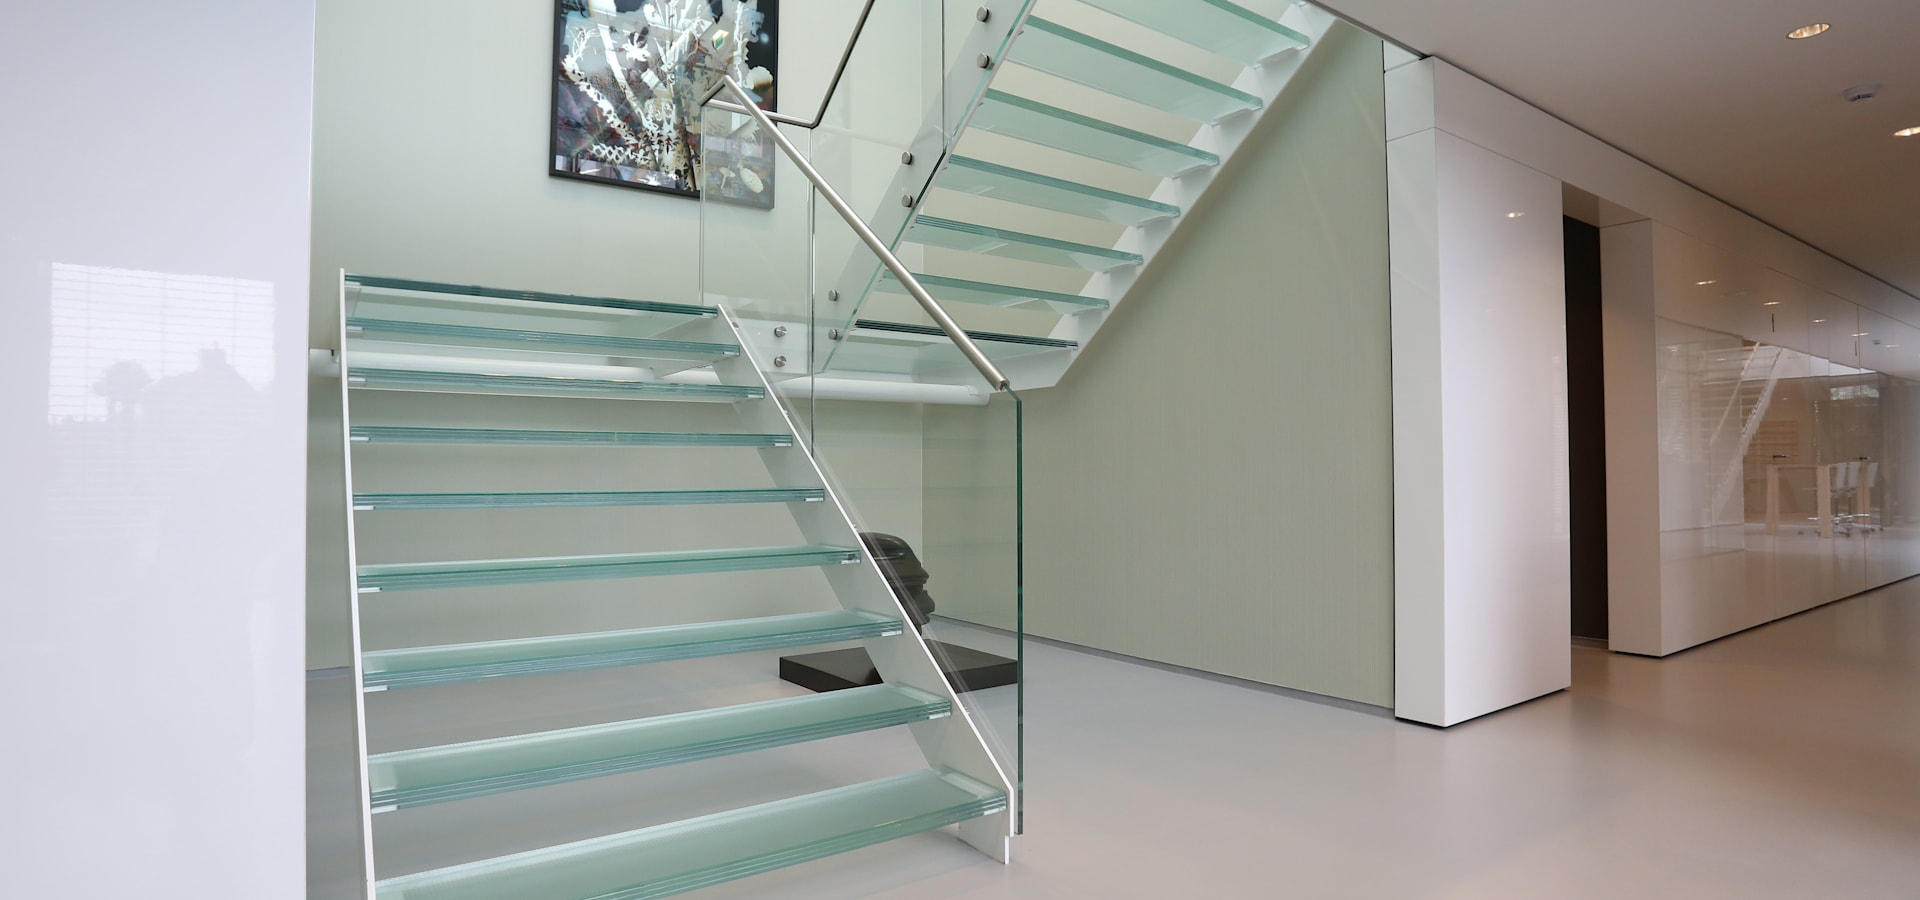 EeStairs | Stairs and balustrades